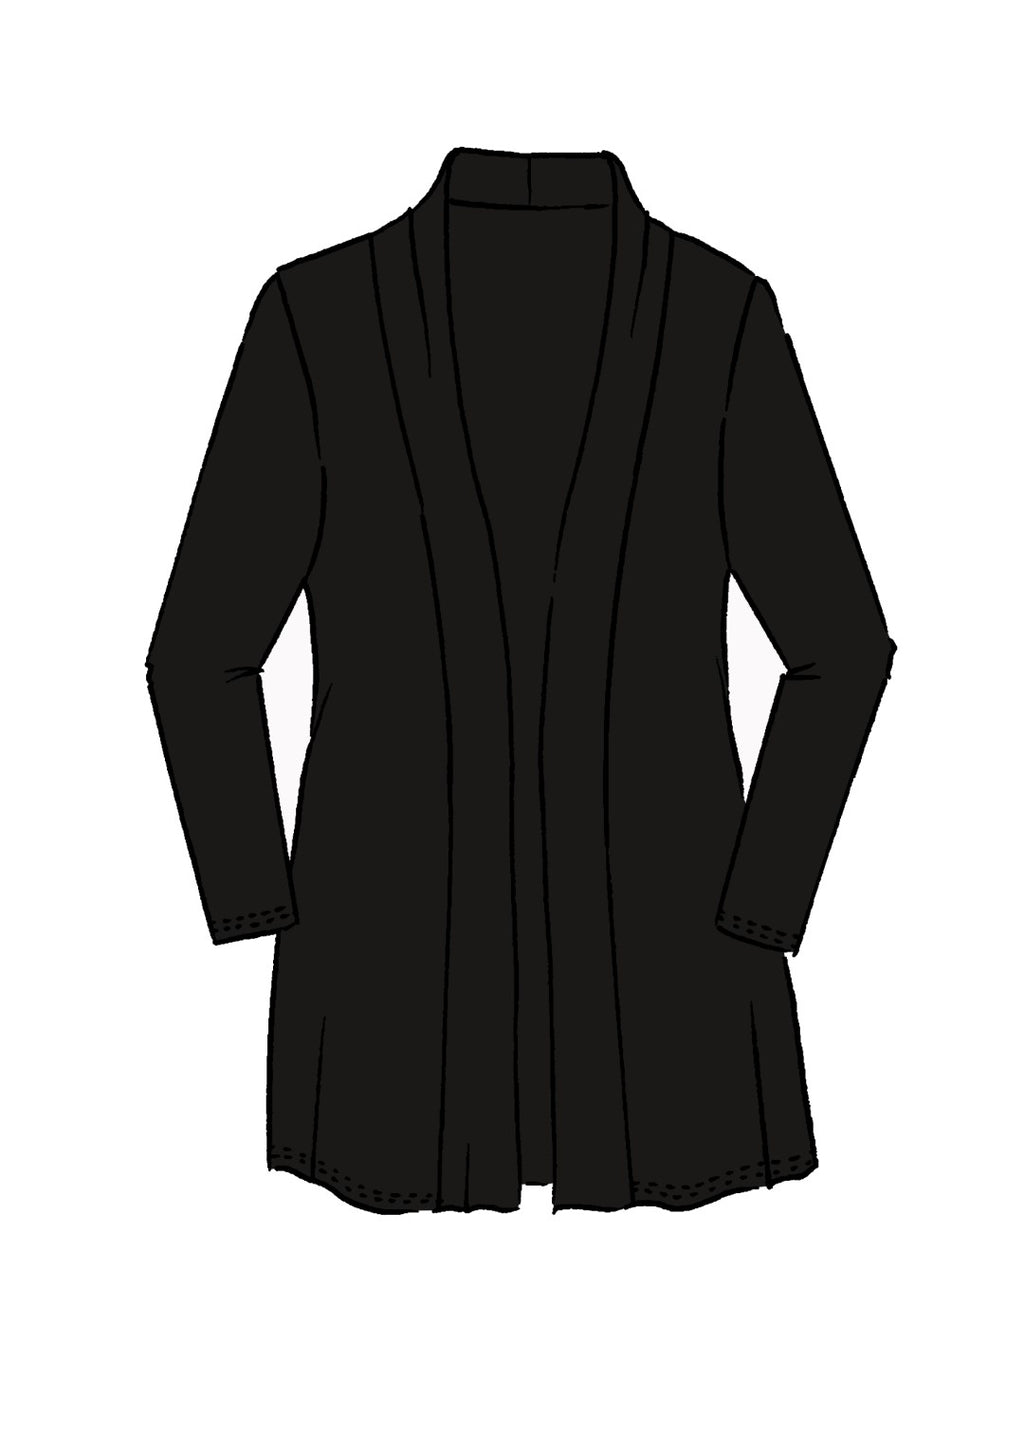 PAULA RYAN ESSENTIALS Edge To Edge Waisted Cardigan - MicroModal - Jacket - Paula Ryan Essentials - Paula Ryan